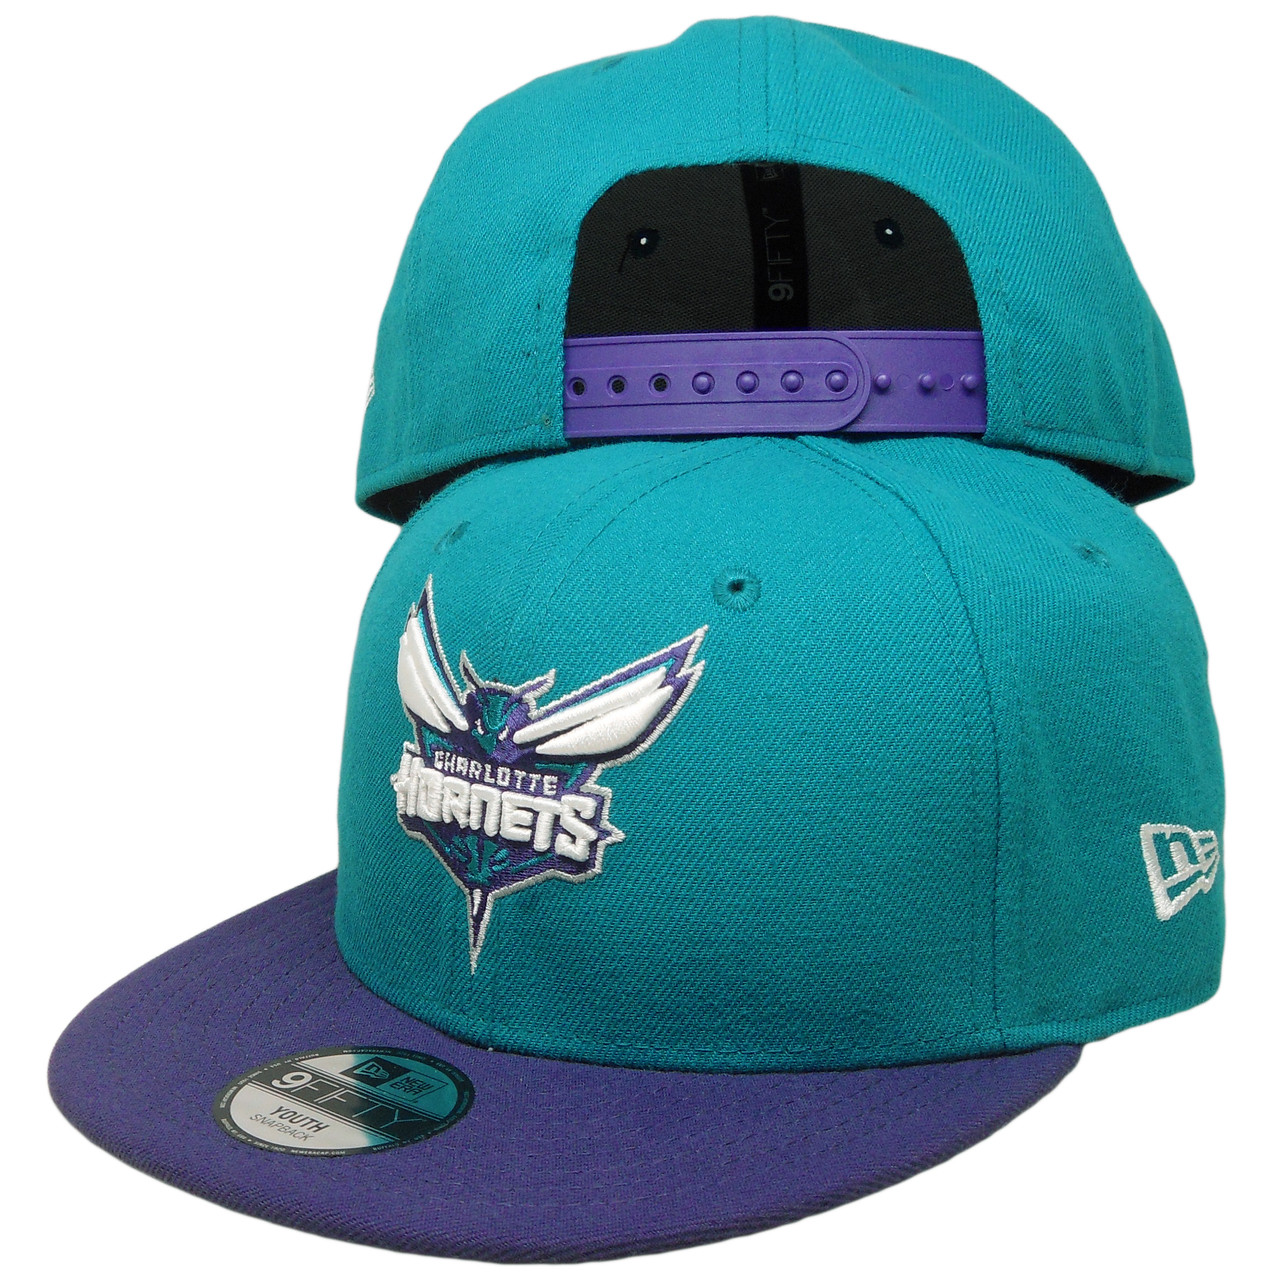 Charlotte Hornets New Era KIDS 2Tone 9Fifty Snapback Hat - Teal ... 7b69b5fa24b